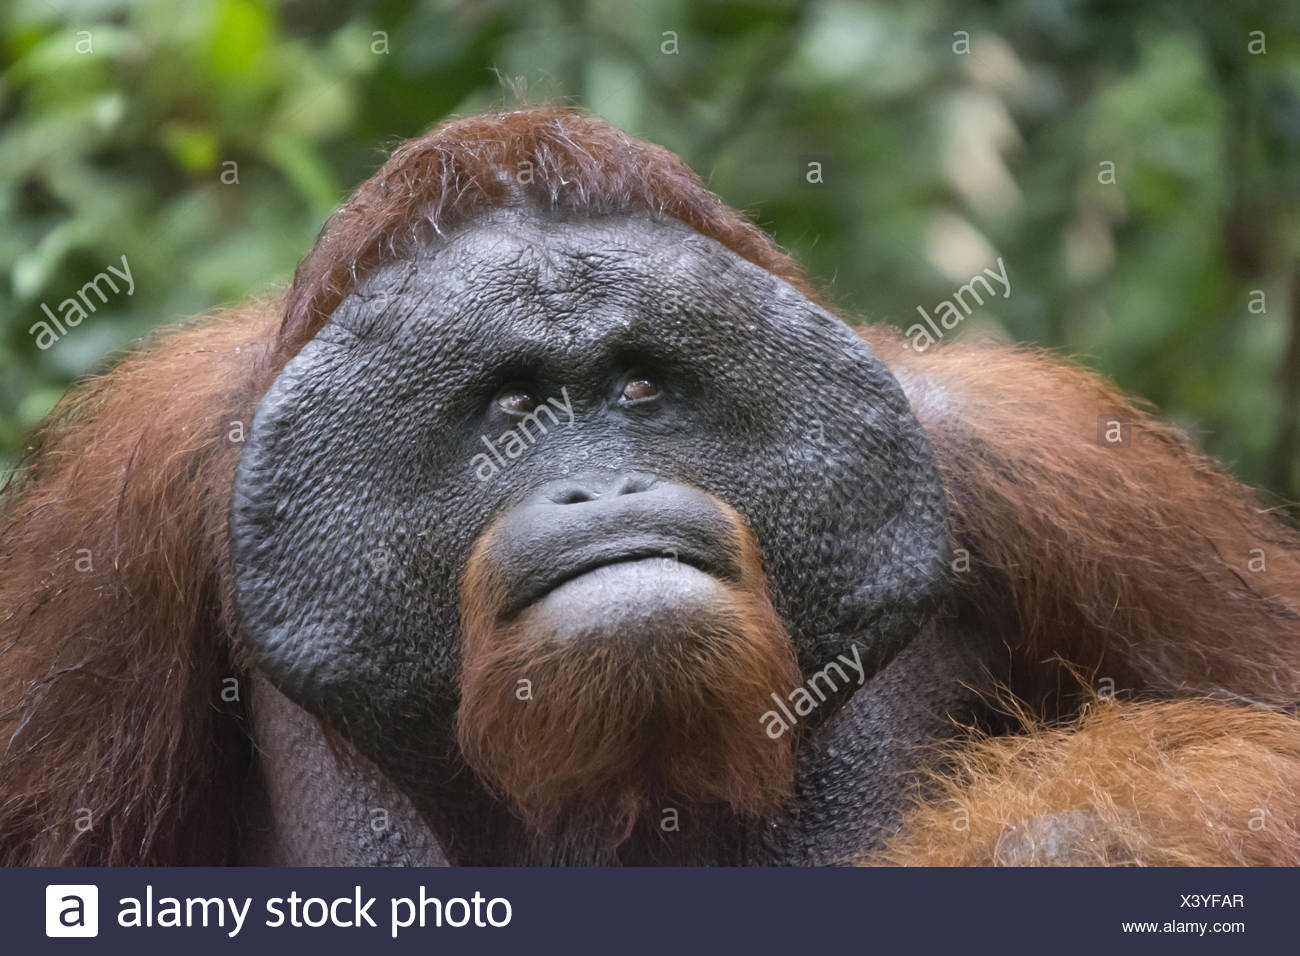 Male Orangutan, Indonesia. Native to Indonesia and Malaysia, orangutans are currently found in only the rainforests of Borneo an Stock Photo